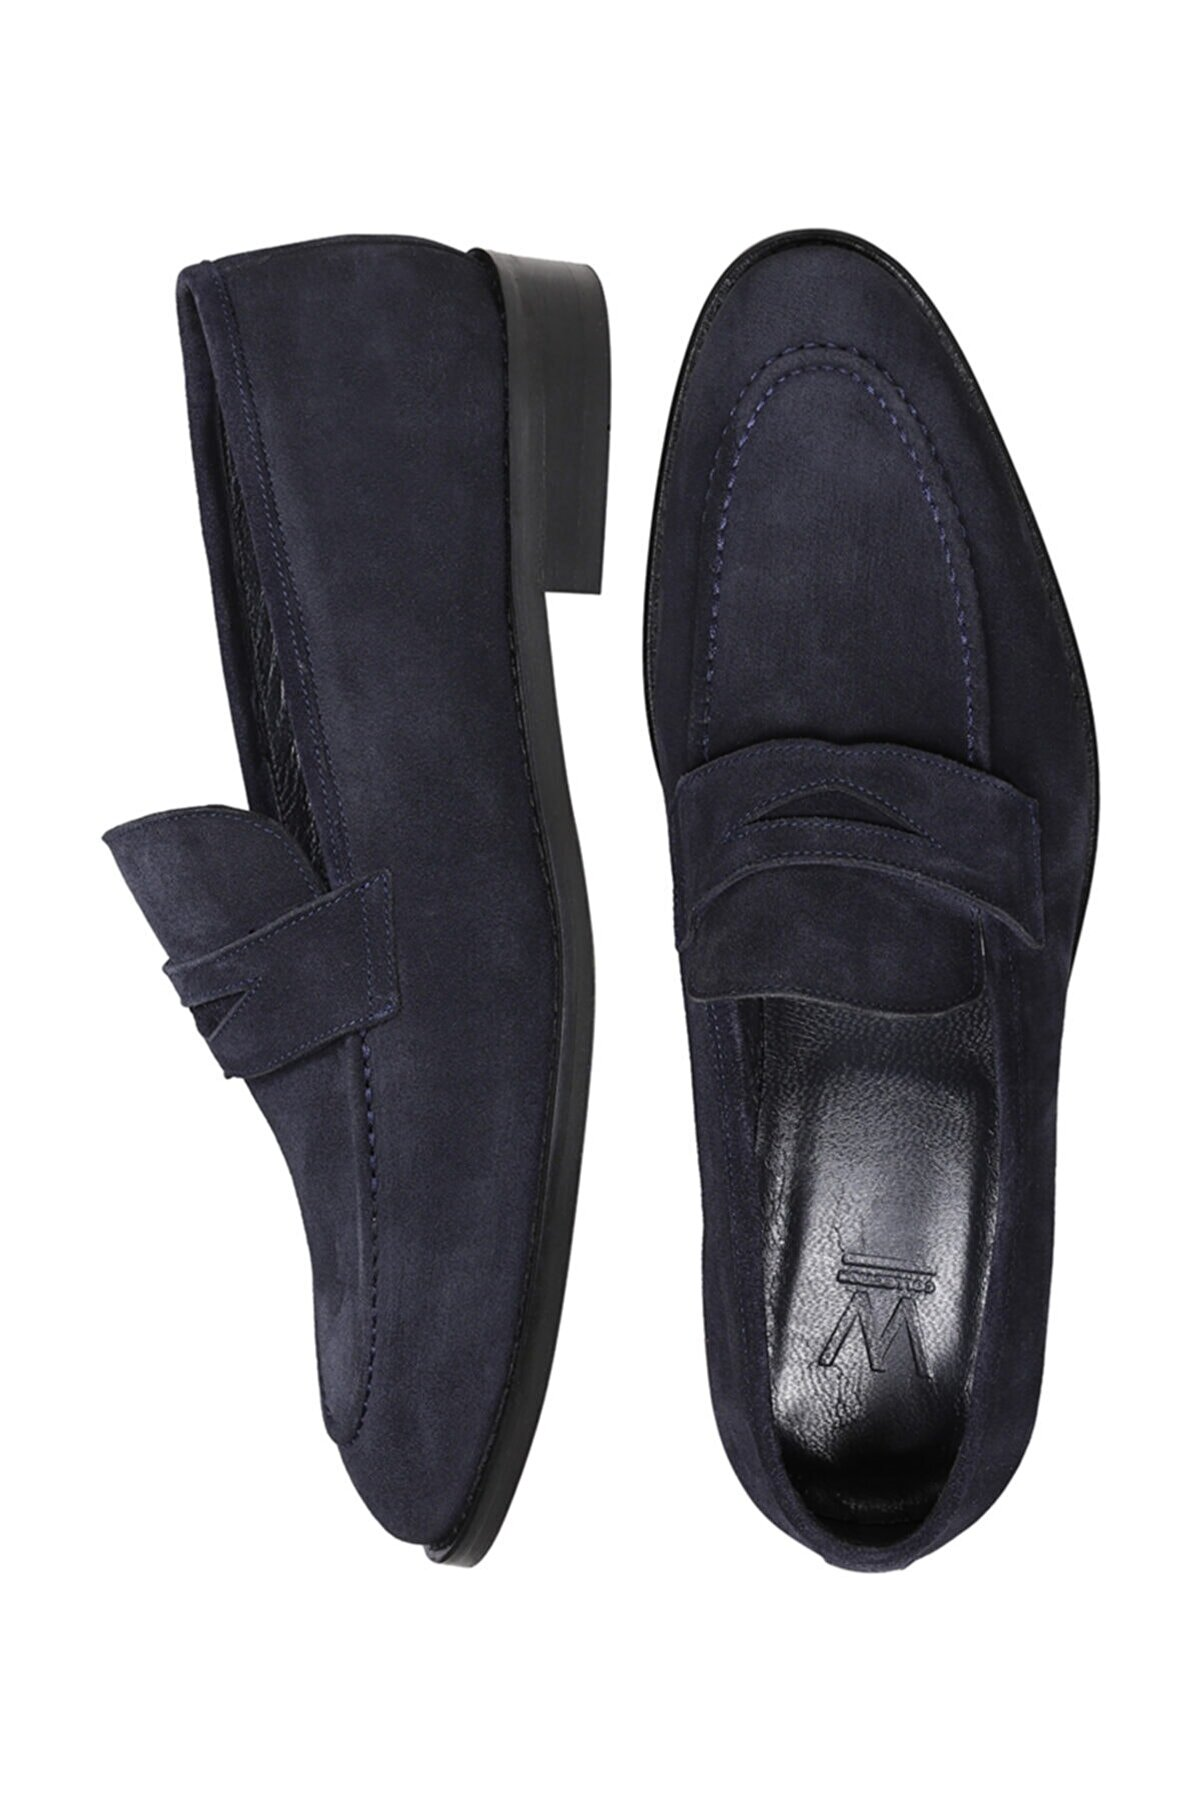 W Collection LACİVERT SÜET LOAFER